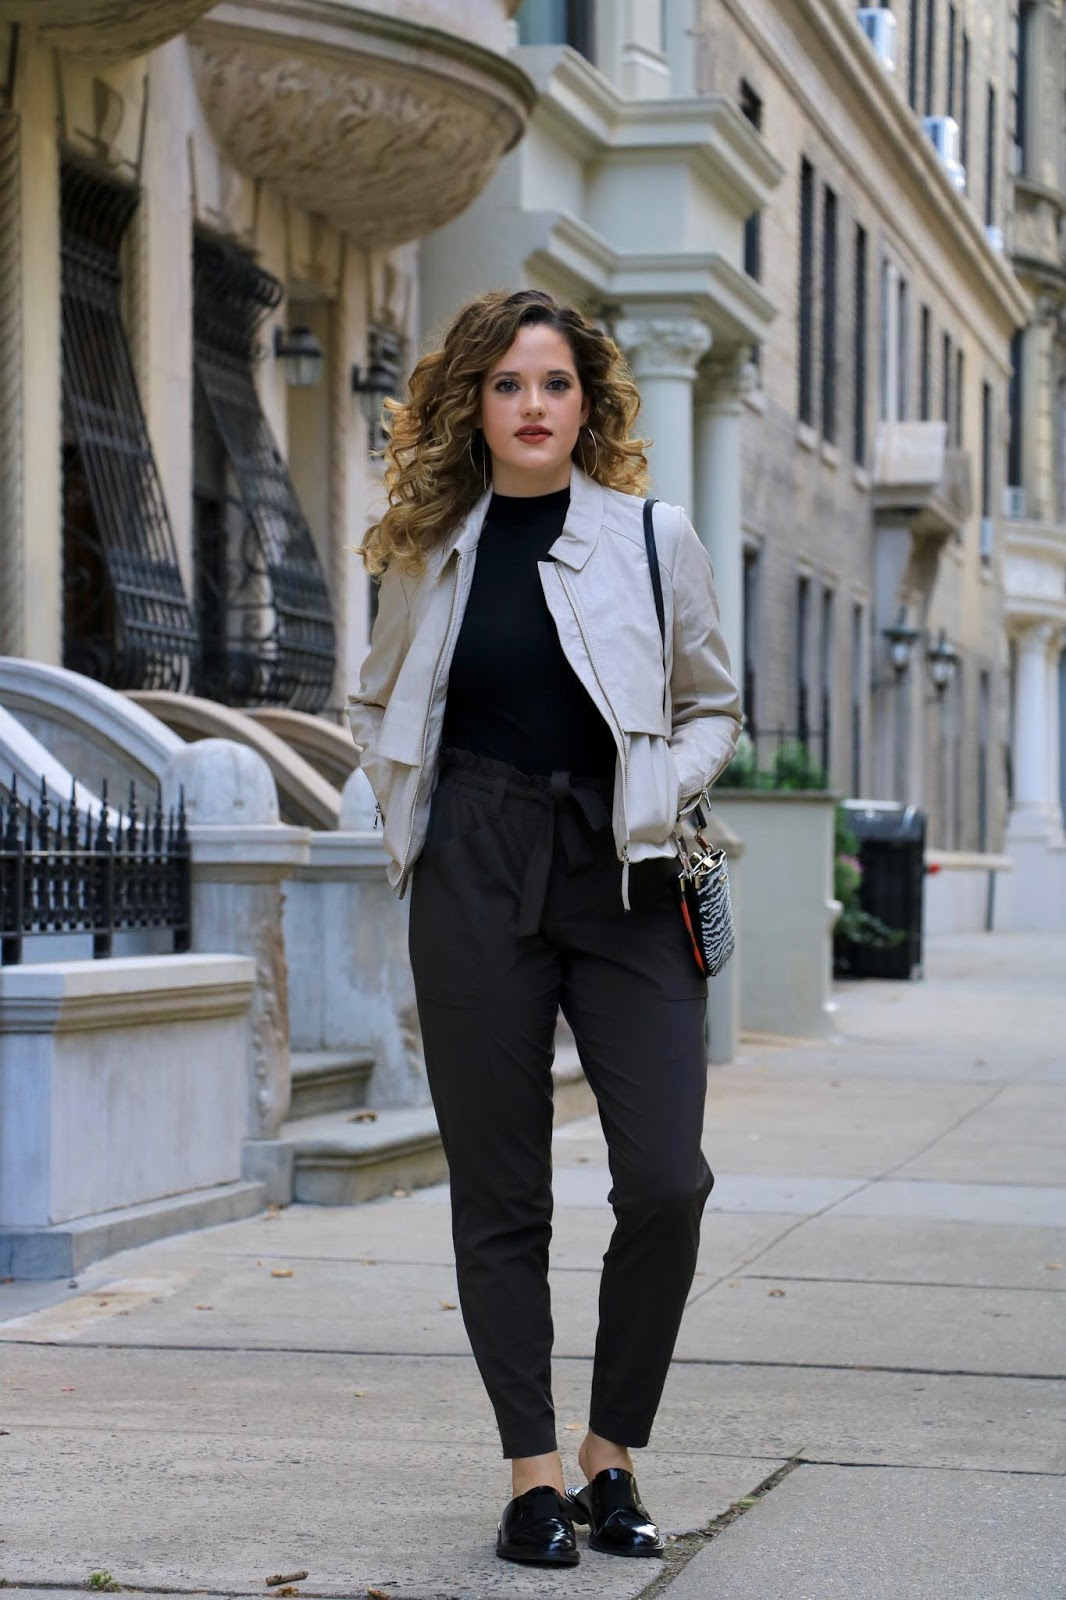 Nyc fashion blogger Kathleen Harper wearing 2019 Fall fashion trends.